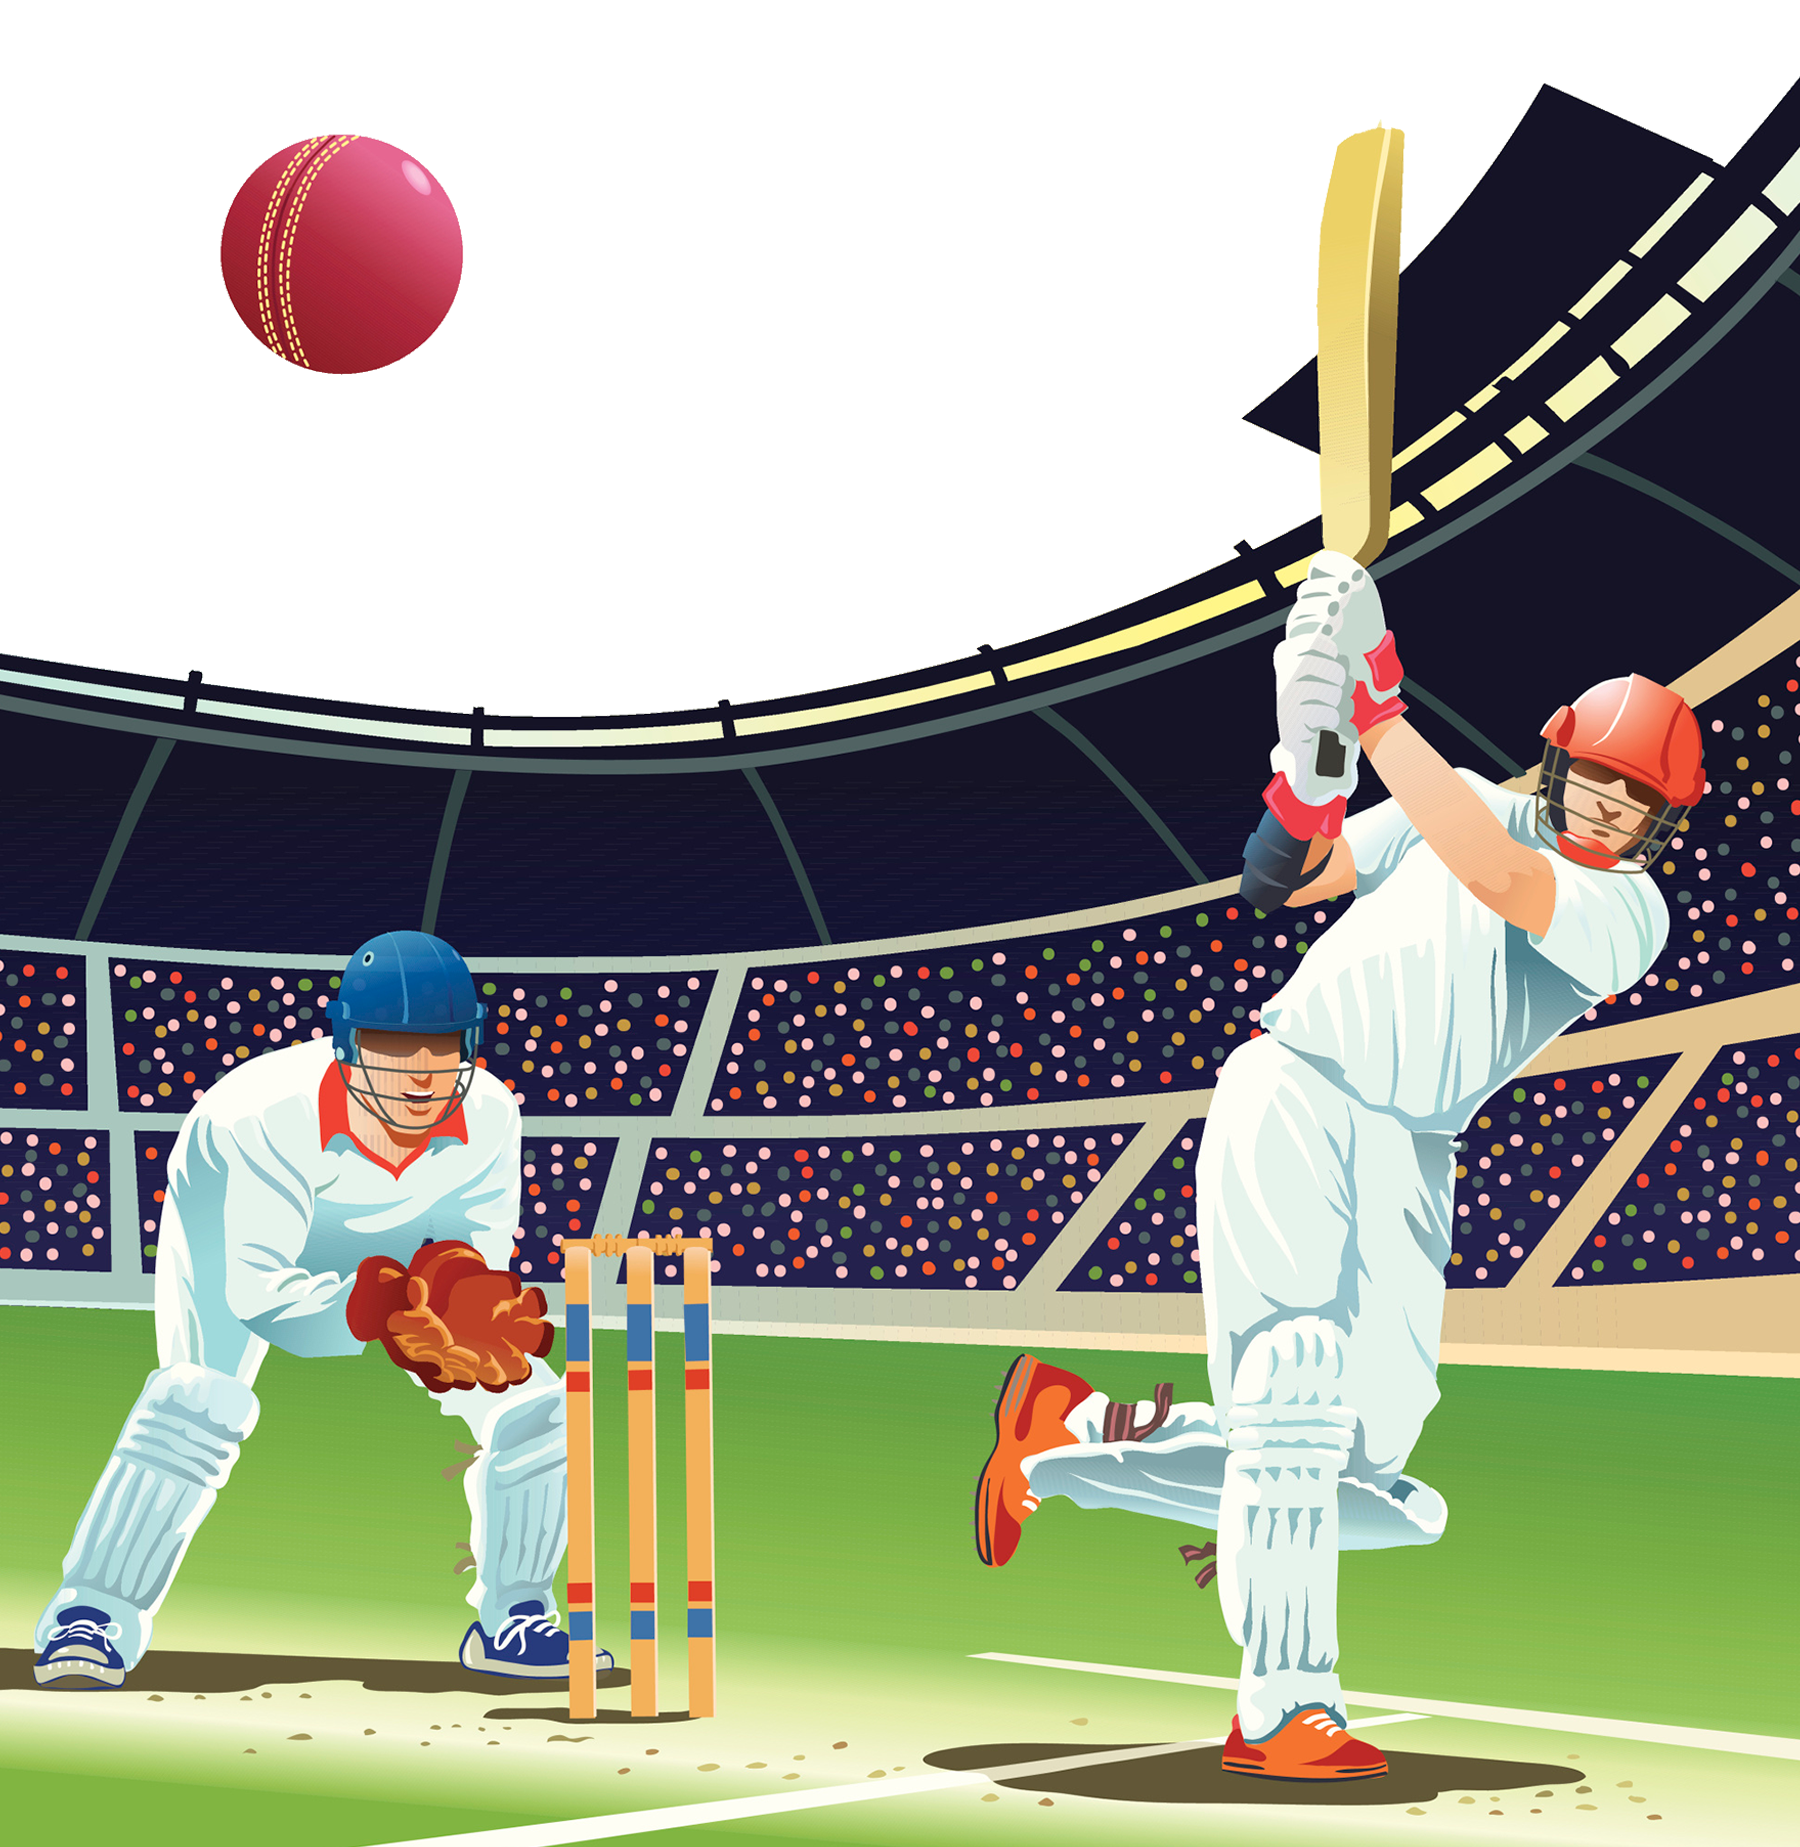 Cricket Venue Play Baseball Sport Batting PNG Image